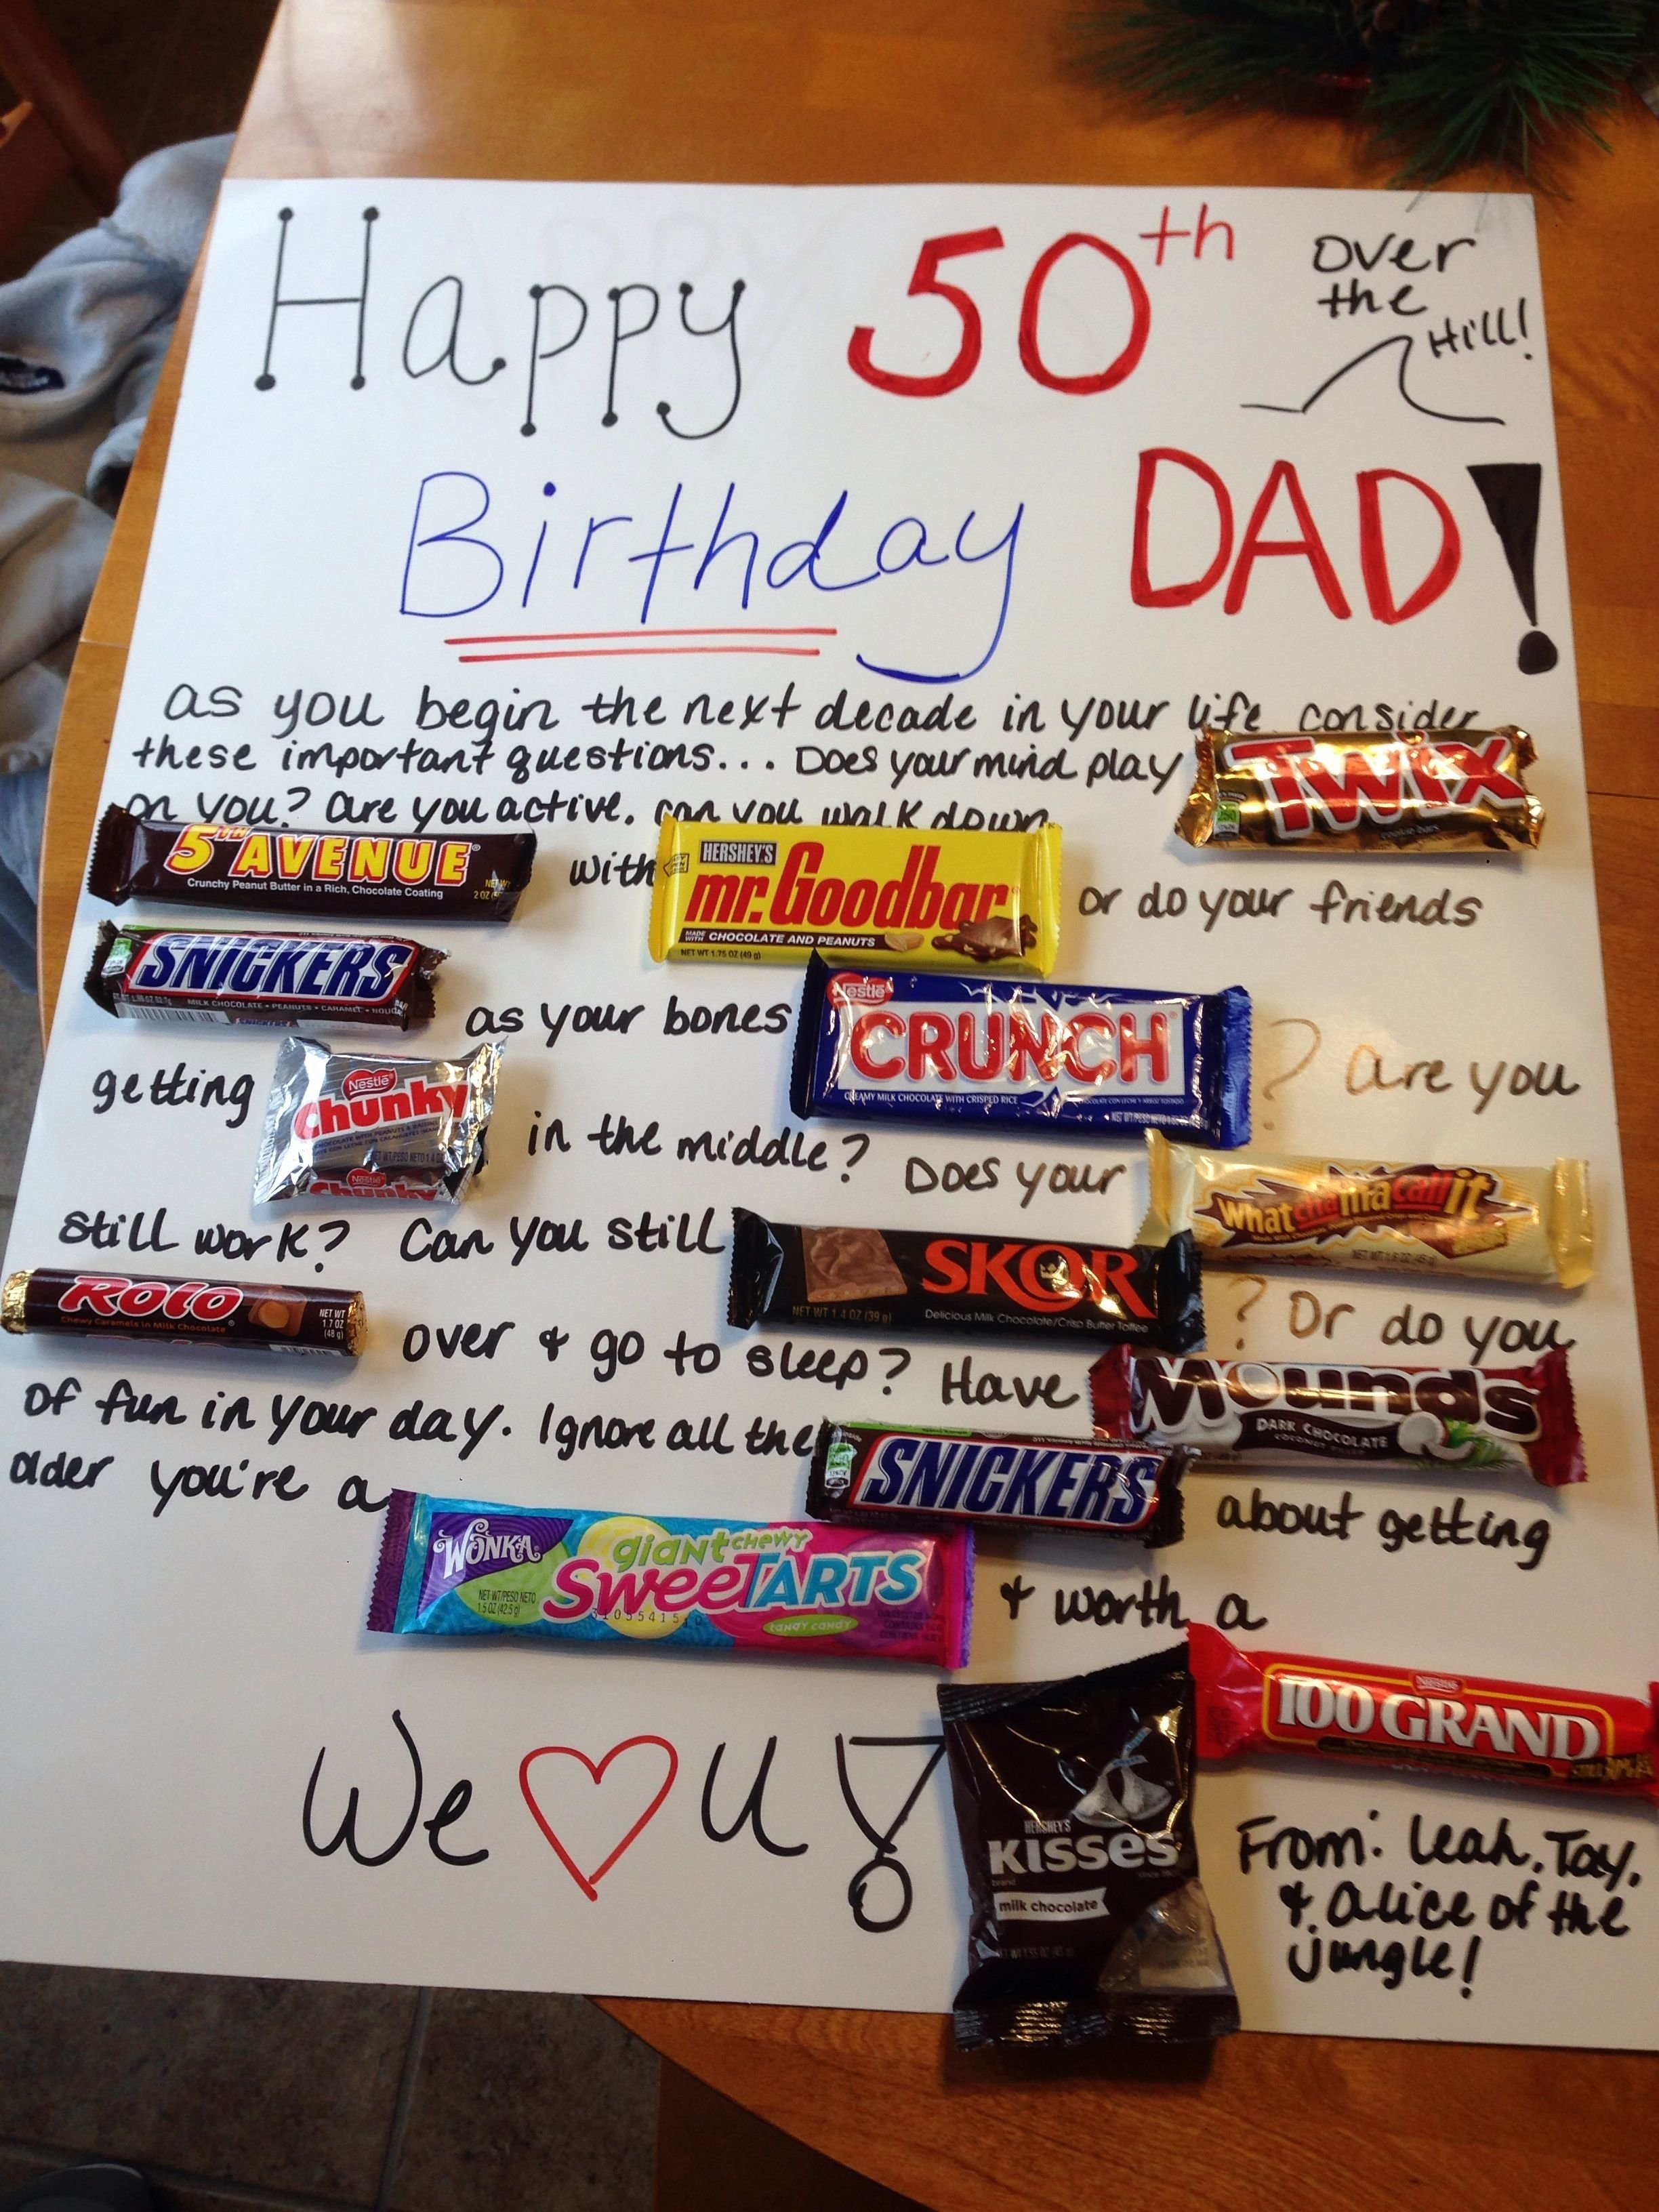 10 Awesome Gift Ideas For 40Th Birthday 40th birthday ideas 50th birthday gift ideas for uncle https www 8 2020